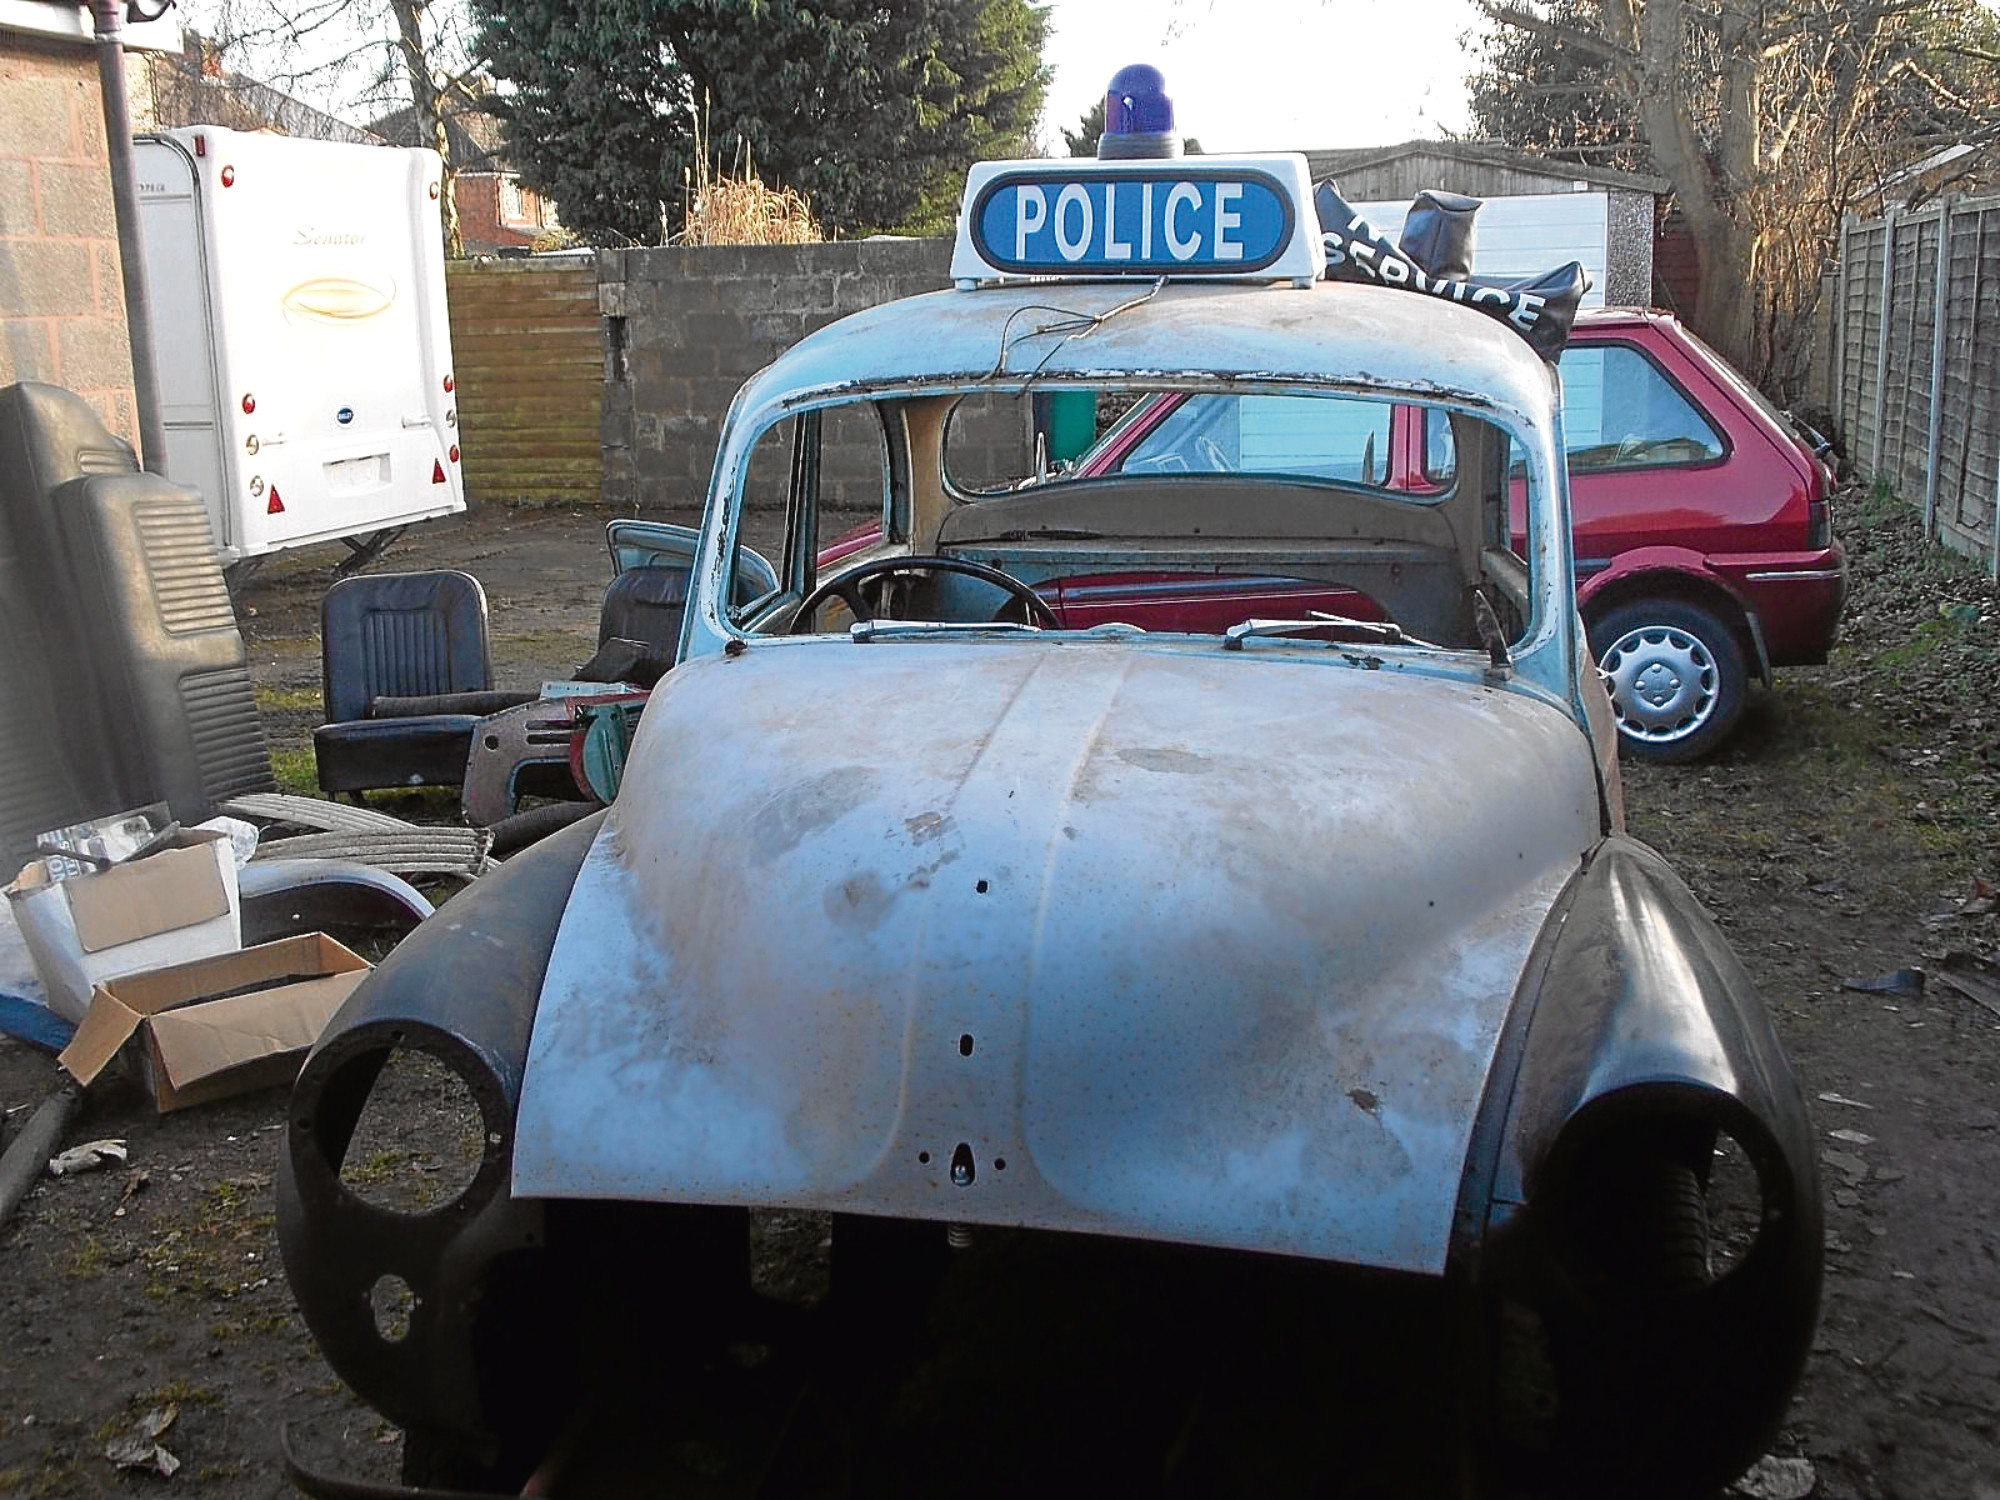 The old Dundee Morris Minor police car, which has been stripped back to its shell.